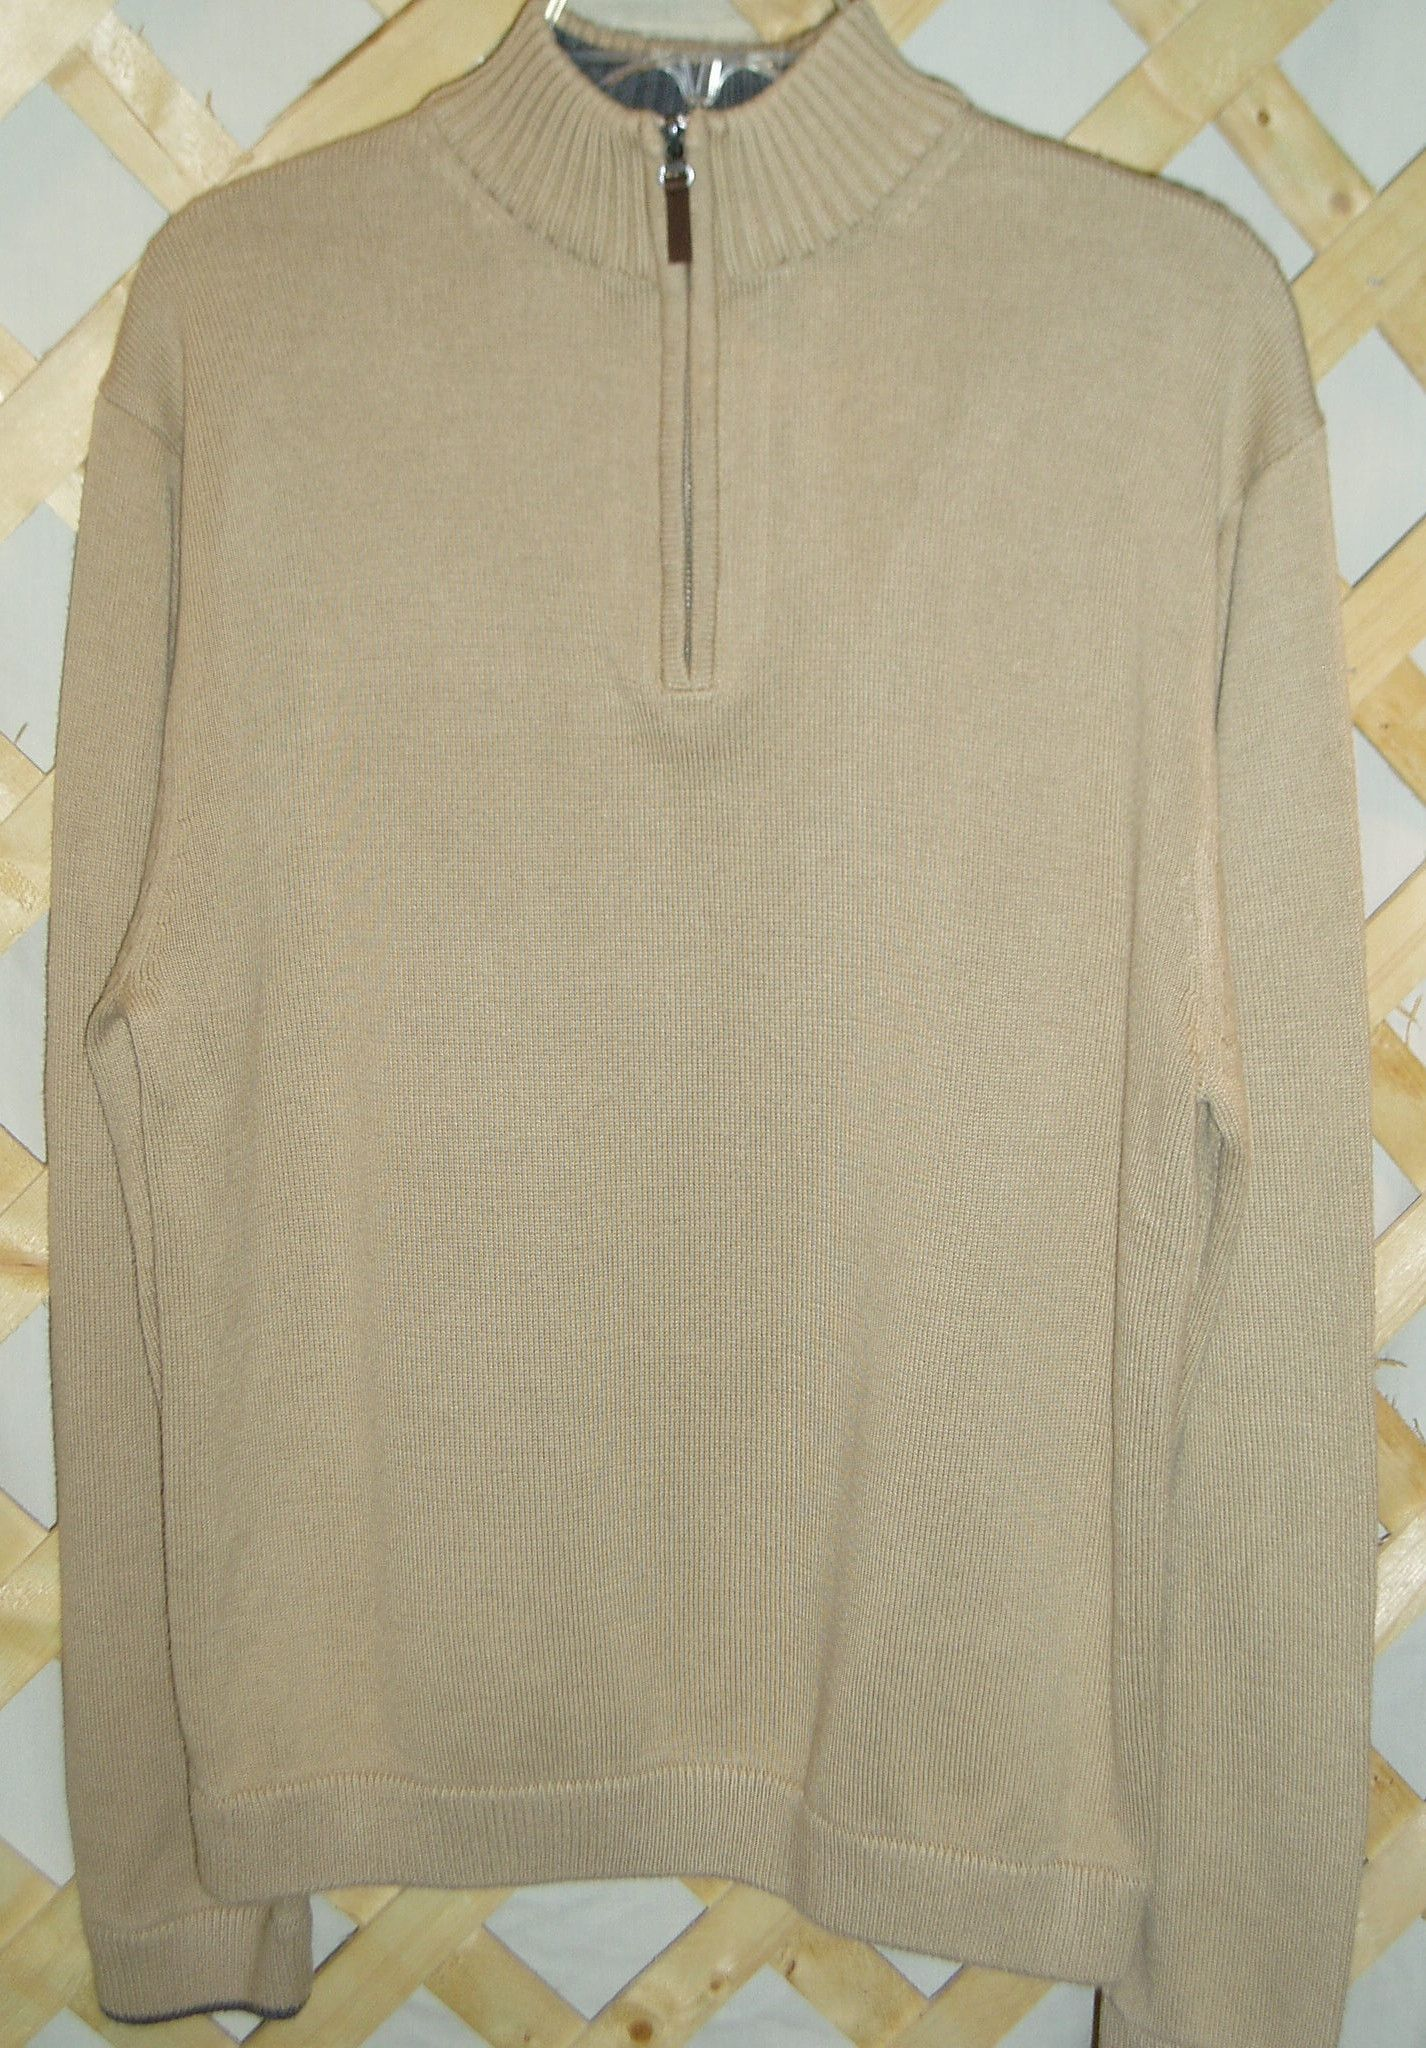 Tan Sweater for Men